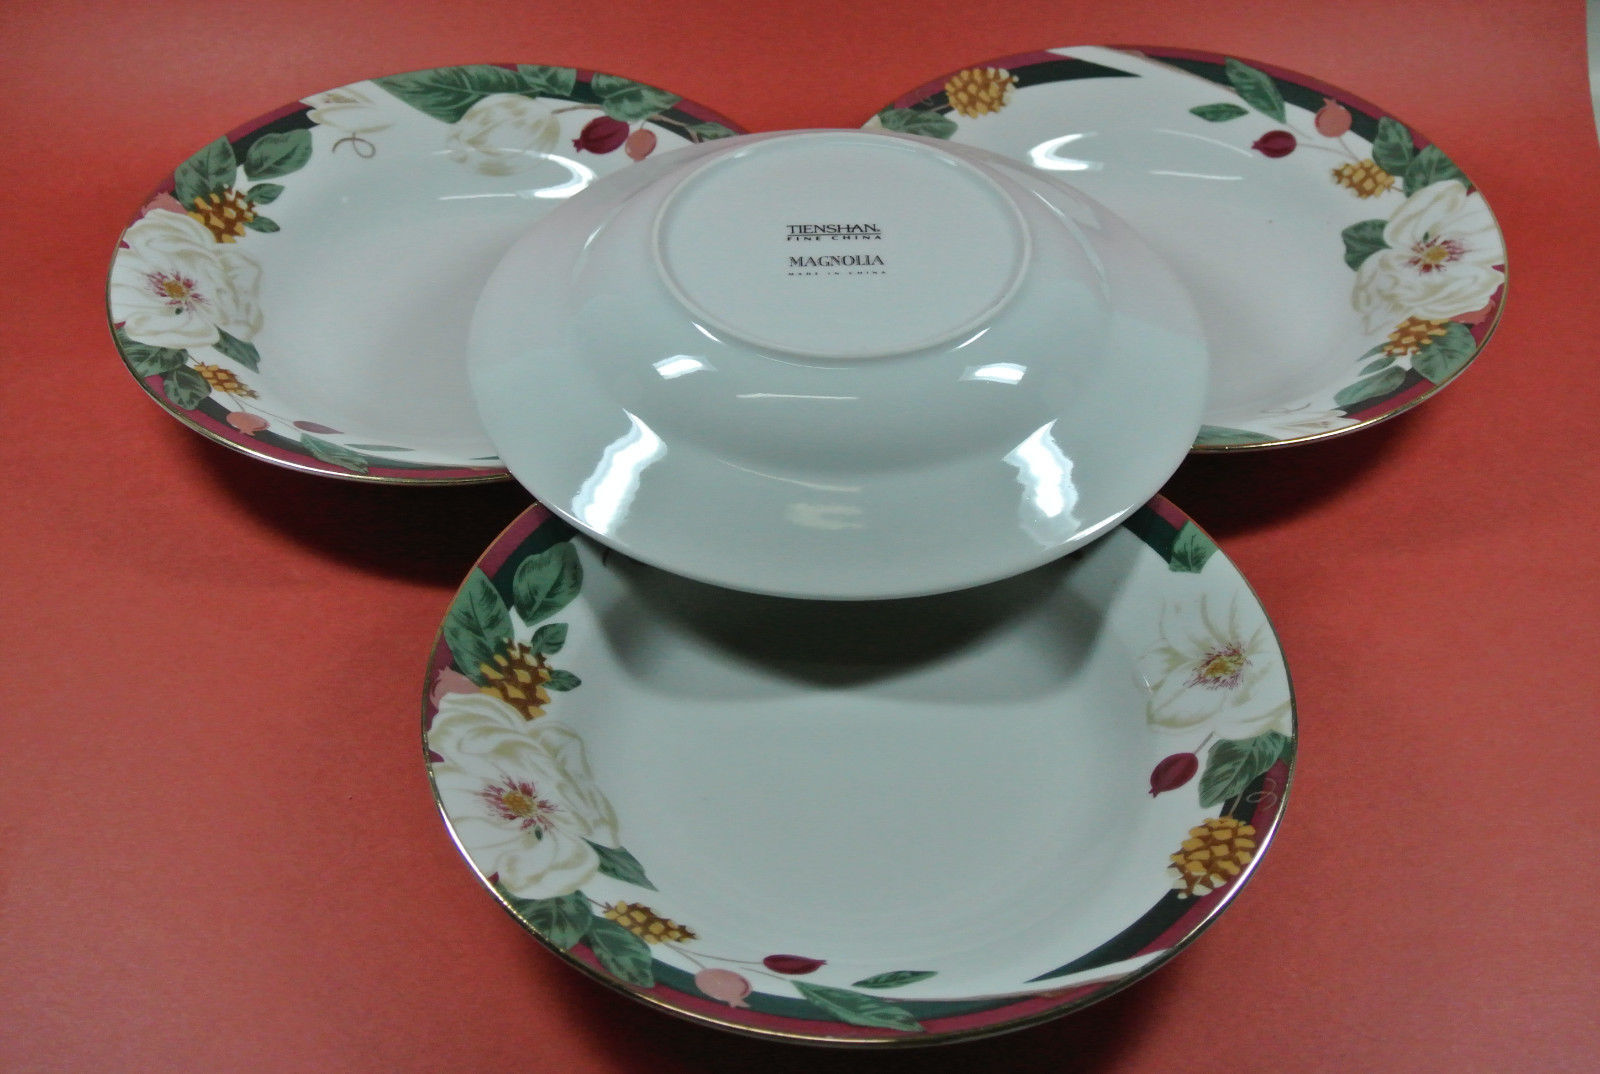 Set of 4 Rim Soup Cereal Bowls Tienshan MAGNOLIA White Flower Cone Red Band